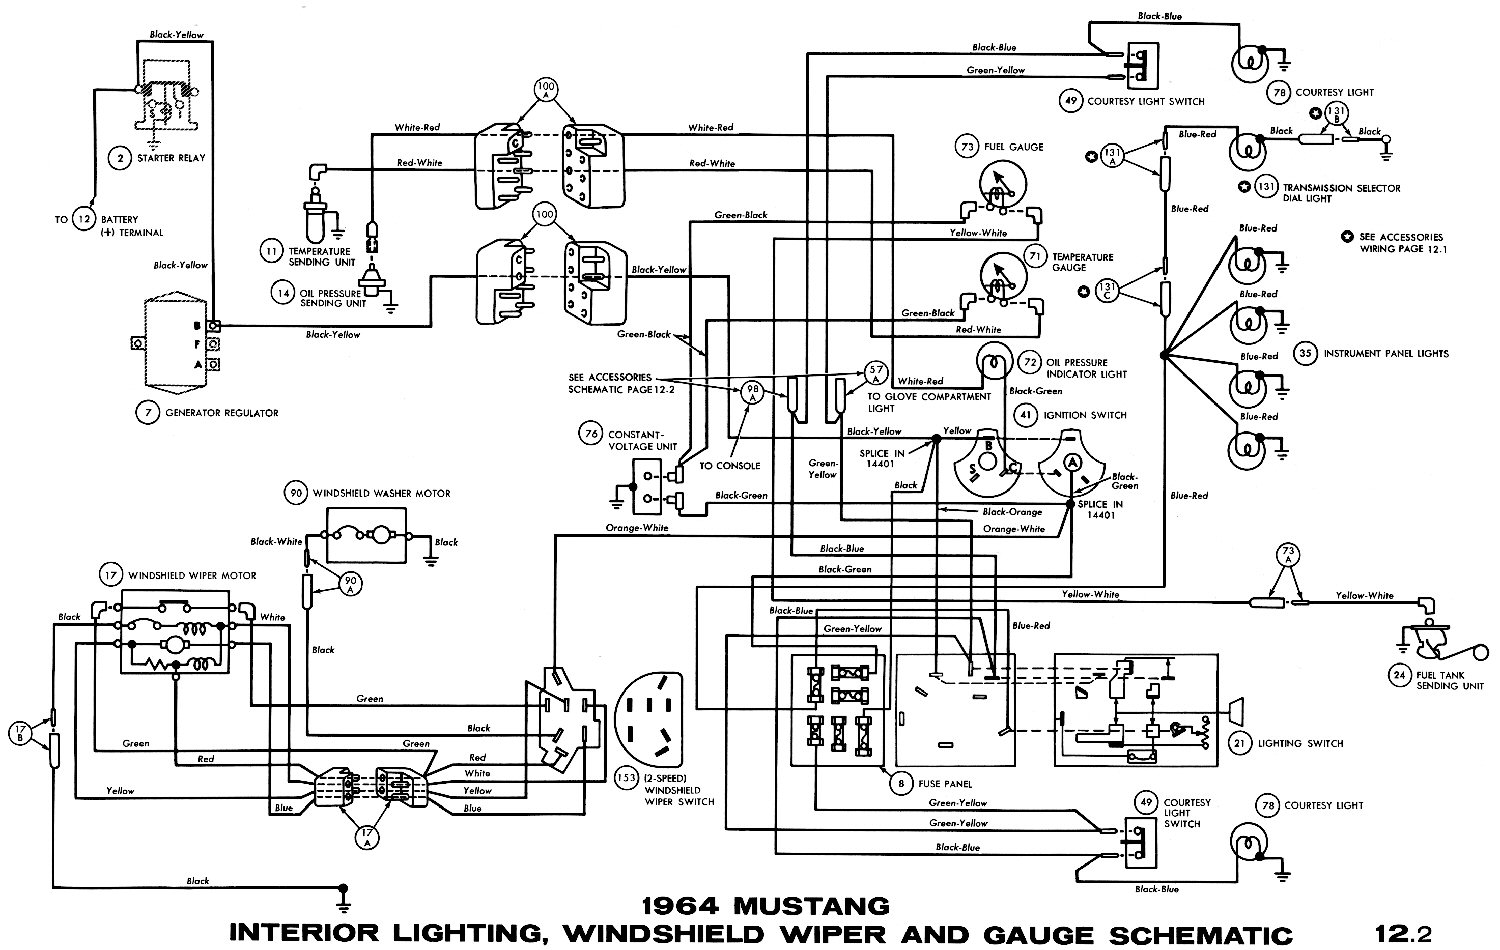 1964k 1966 mustang wiring diagram 1967 mustang wiring schematic \u2022 wiring mustang wiring diagrams at nearapp.co